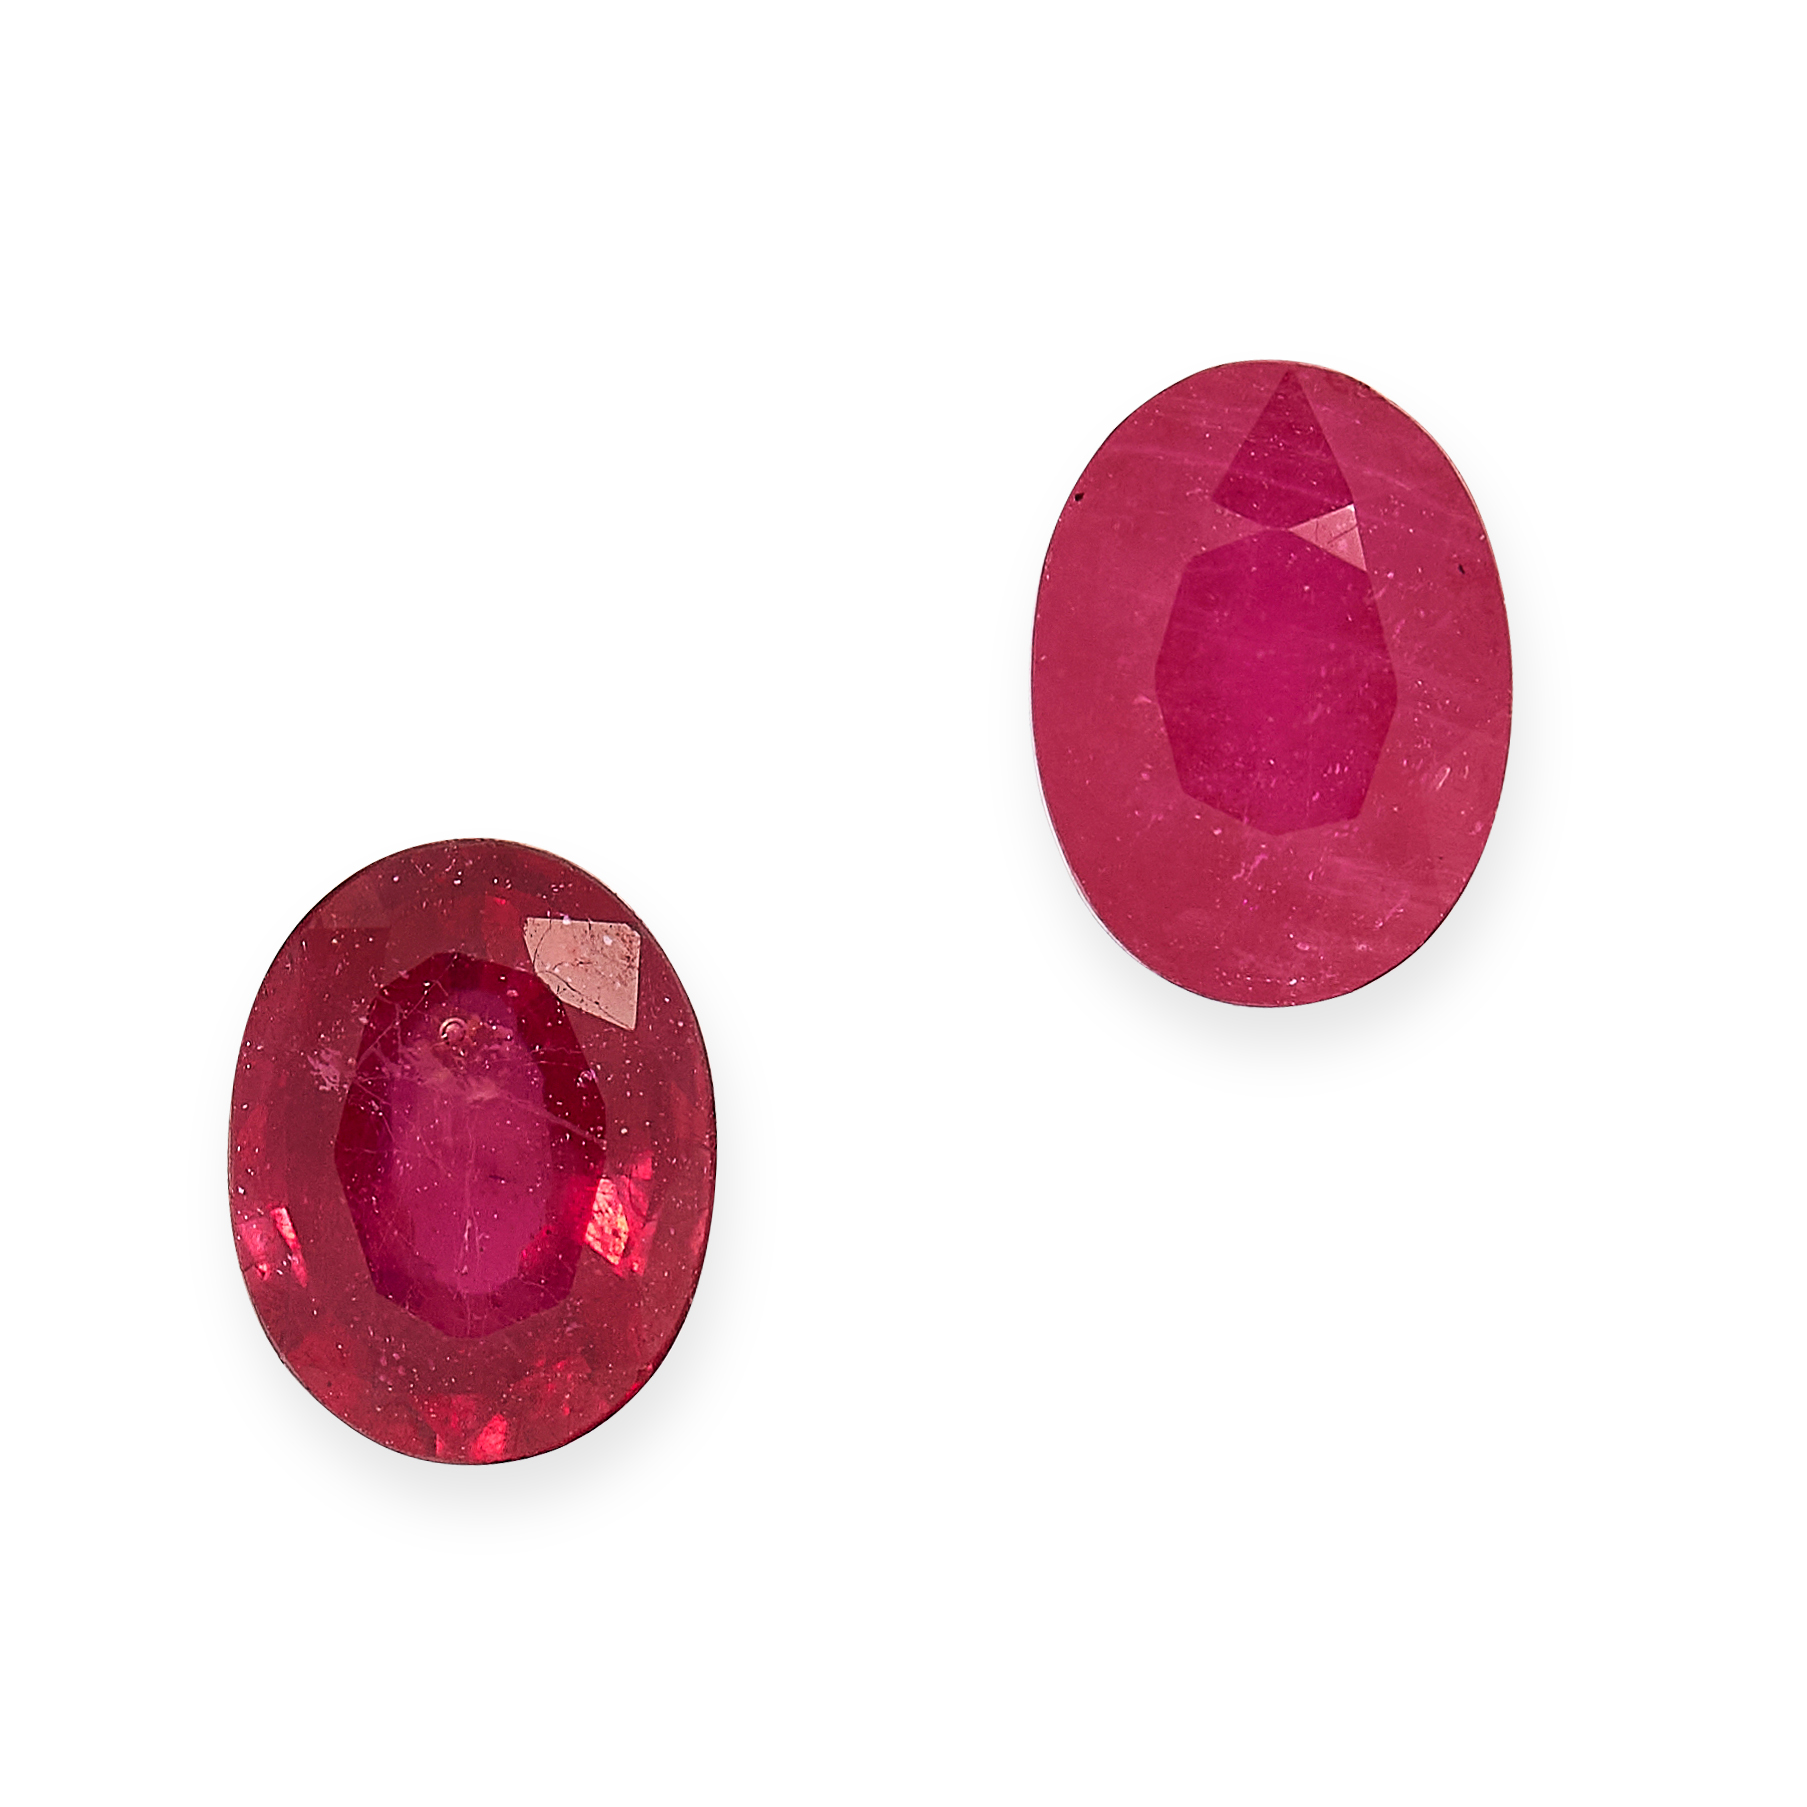 TWO UNMOUNTED RUBIES of 3.50 carats, oval cut.